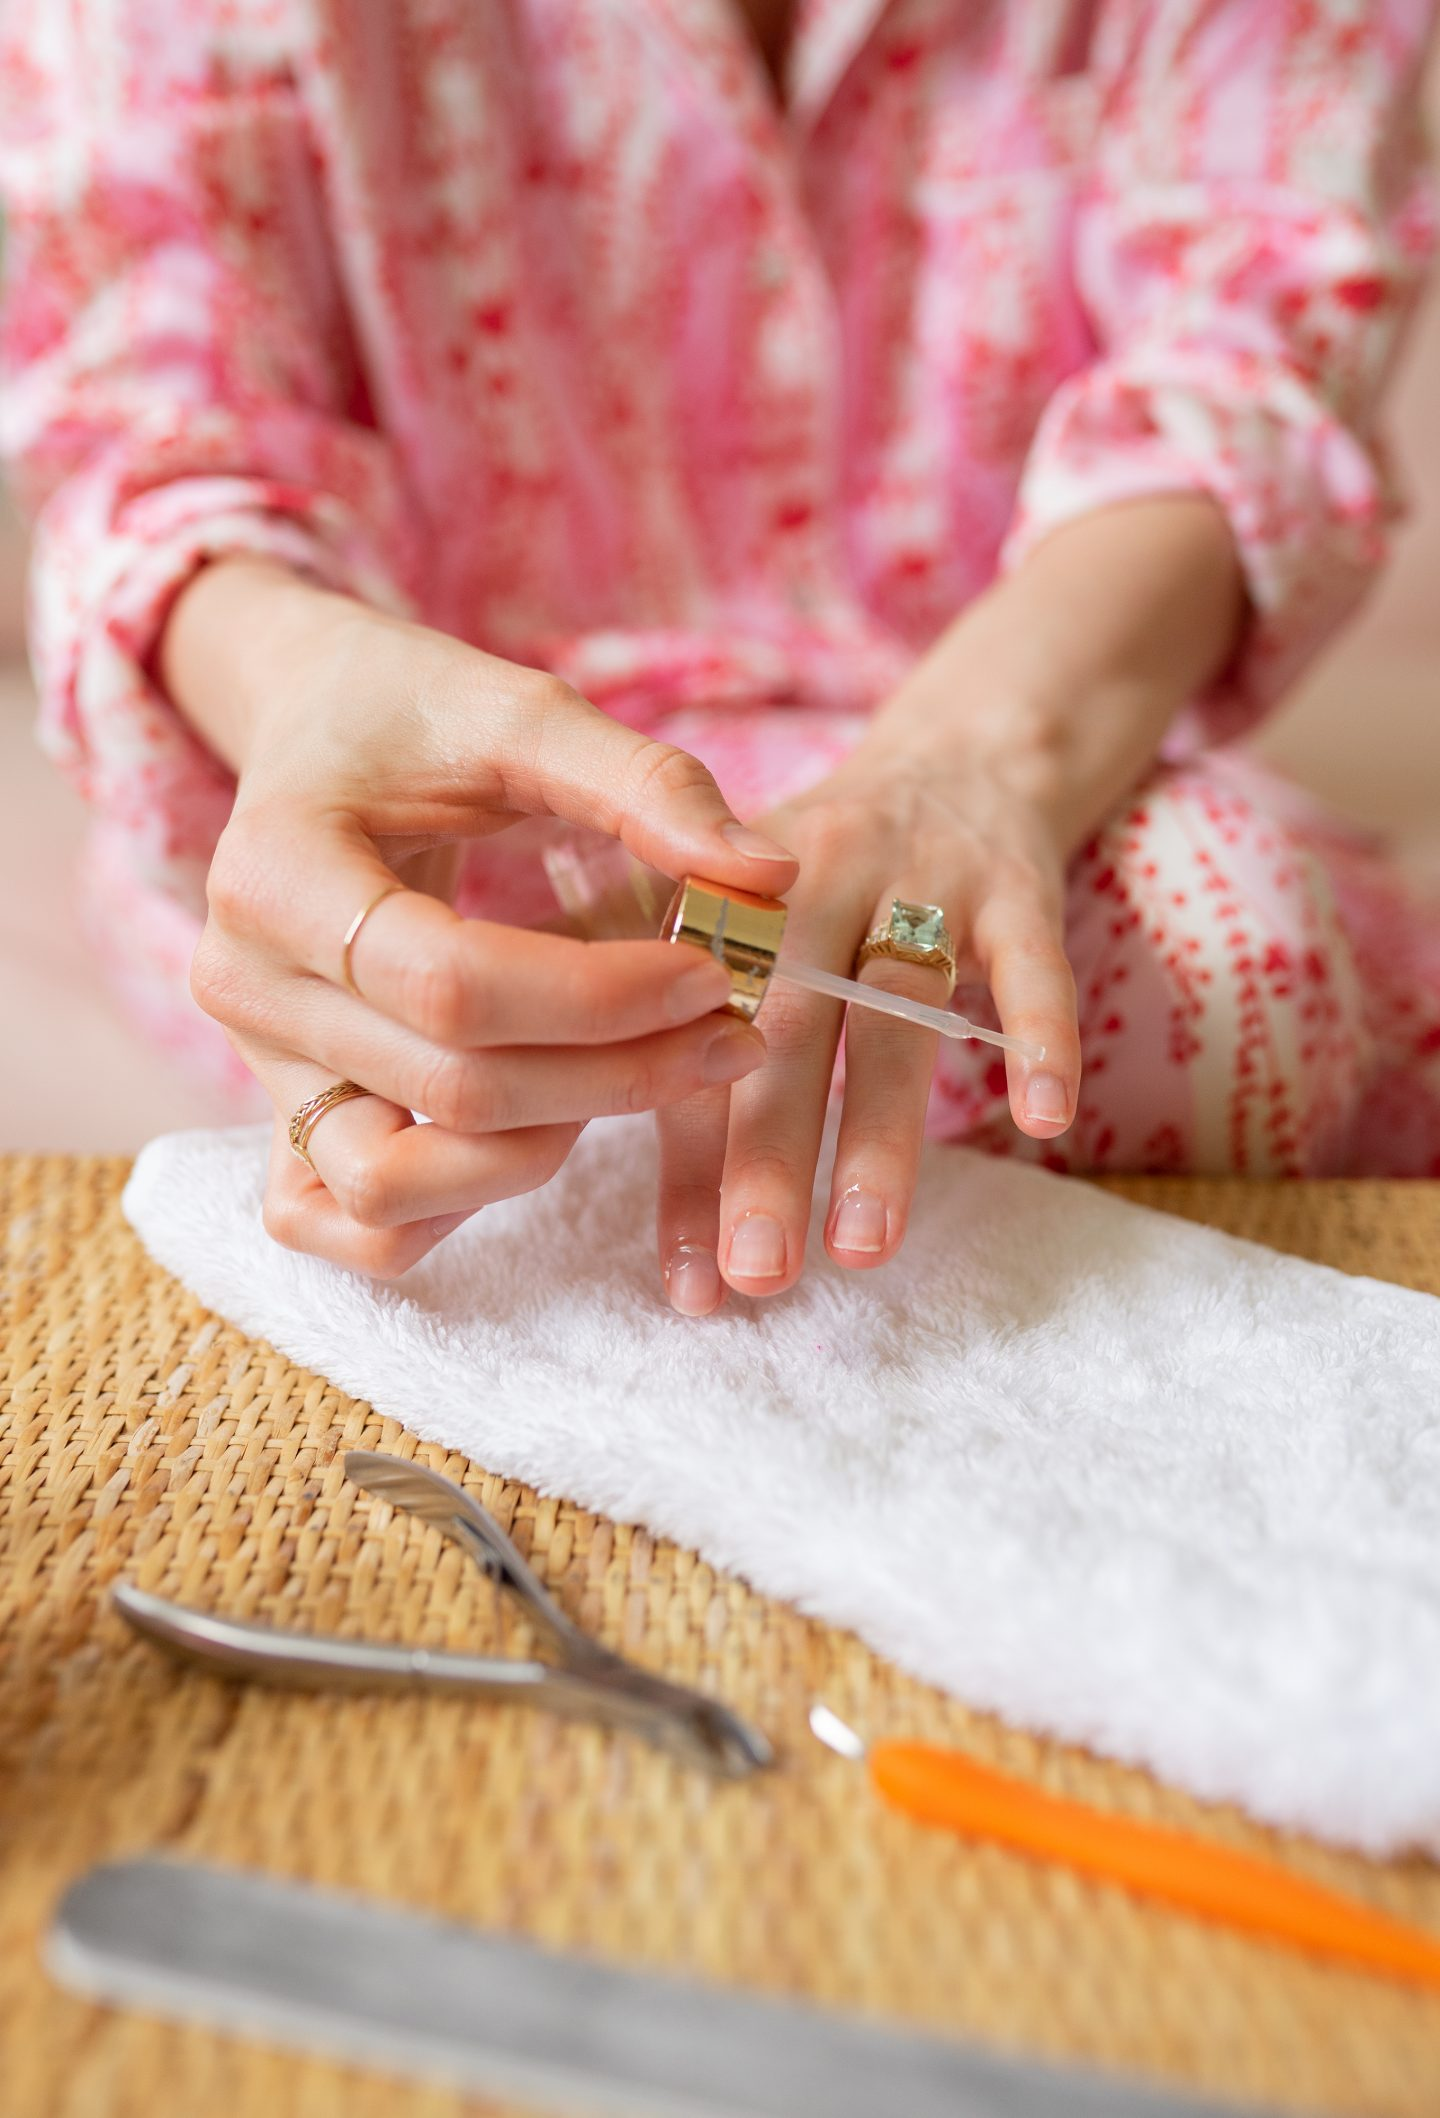 Ashley Brooke shows how to do an at-home manicure on www.ashleybrookedesigns.com